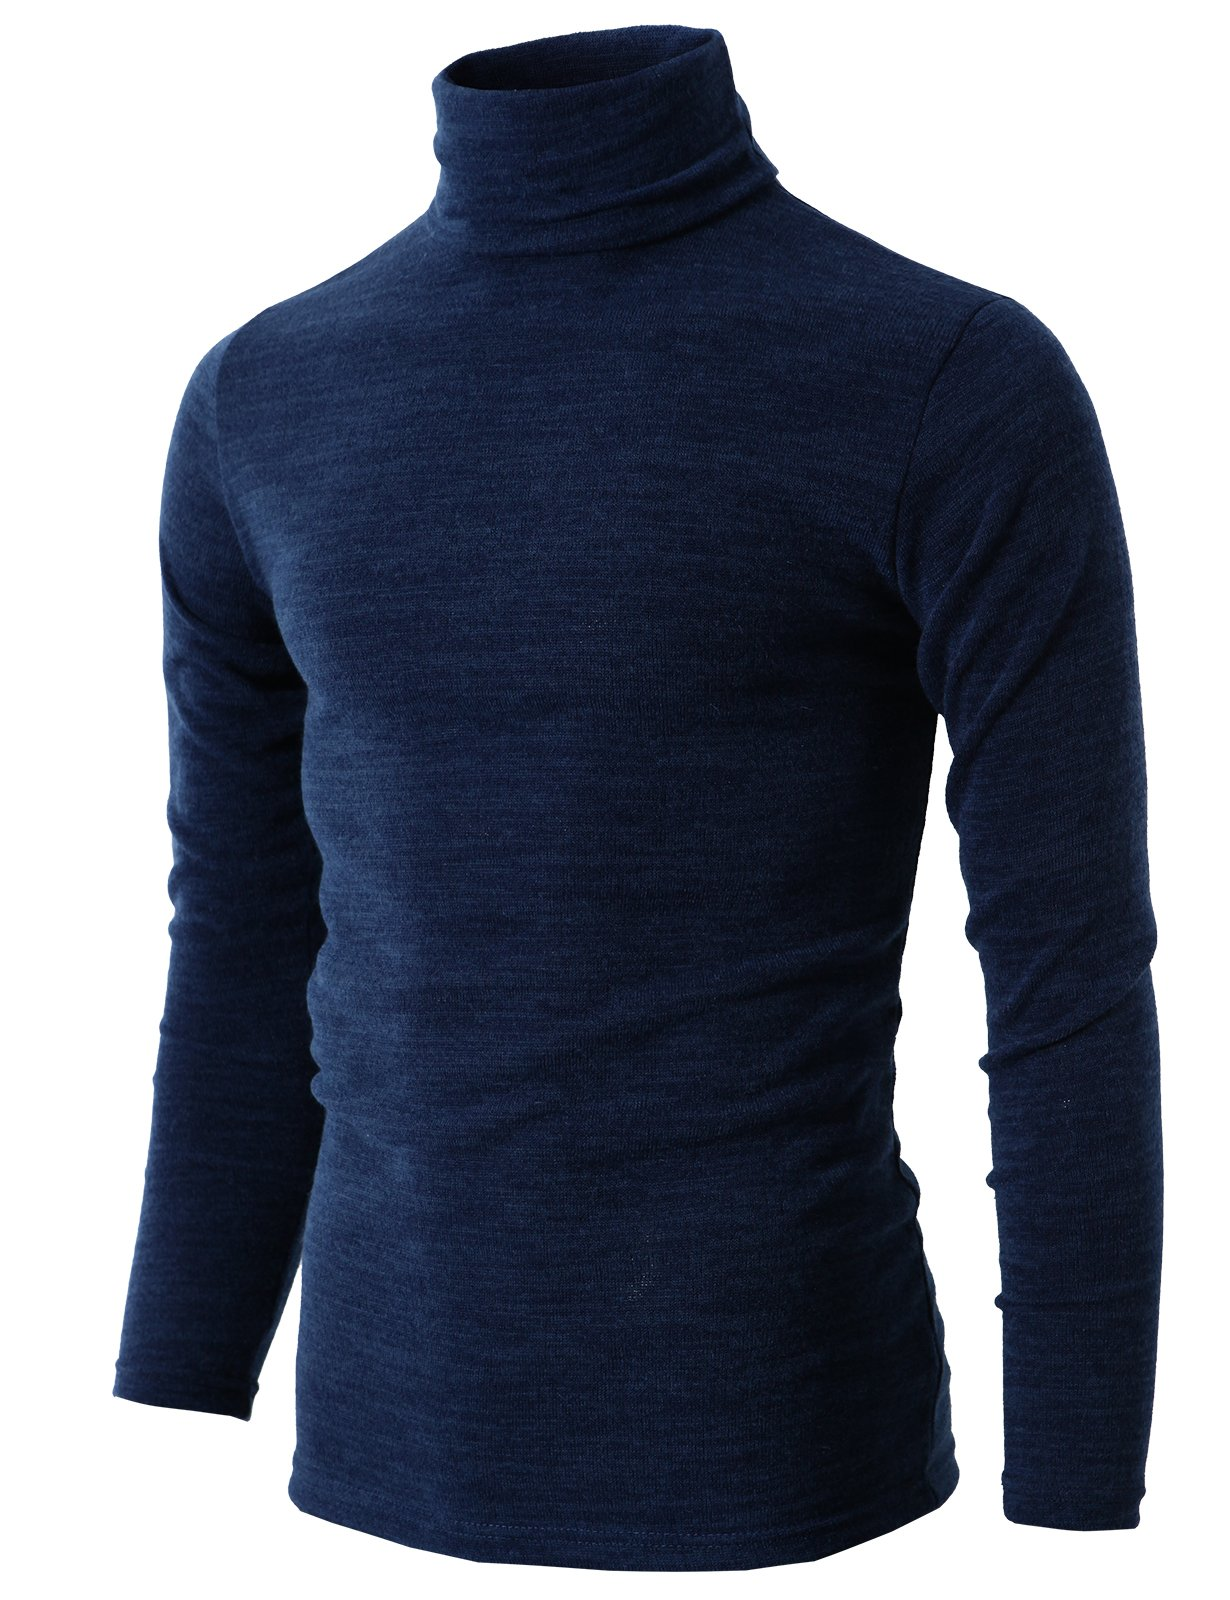 H2H Mens Turtleneck Long Sleeve Fitted Knit Shirt Navy US S/Asia L (KMTTL028) by H2H